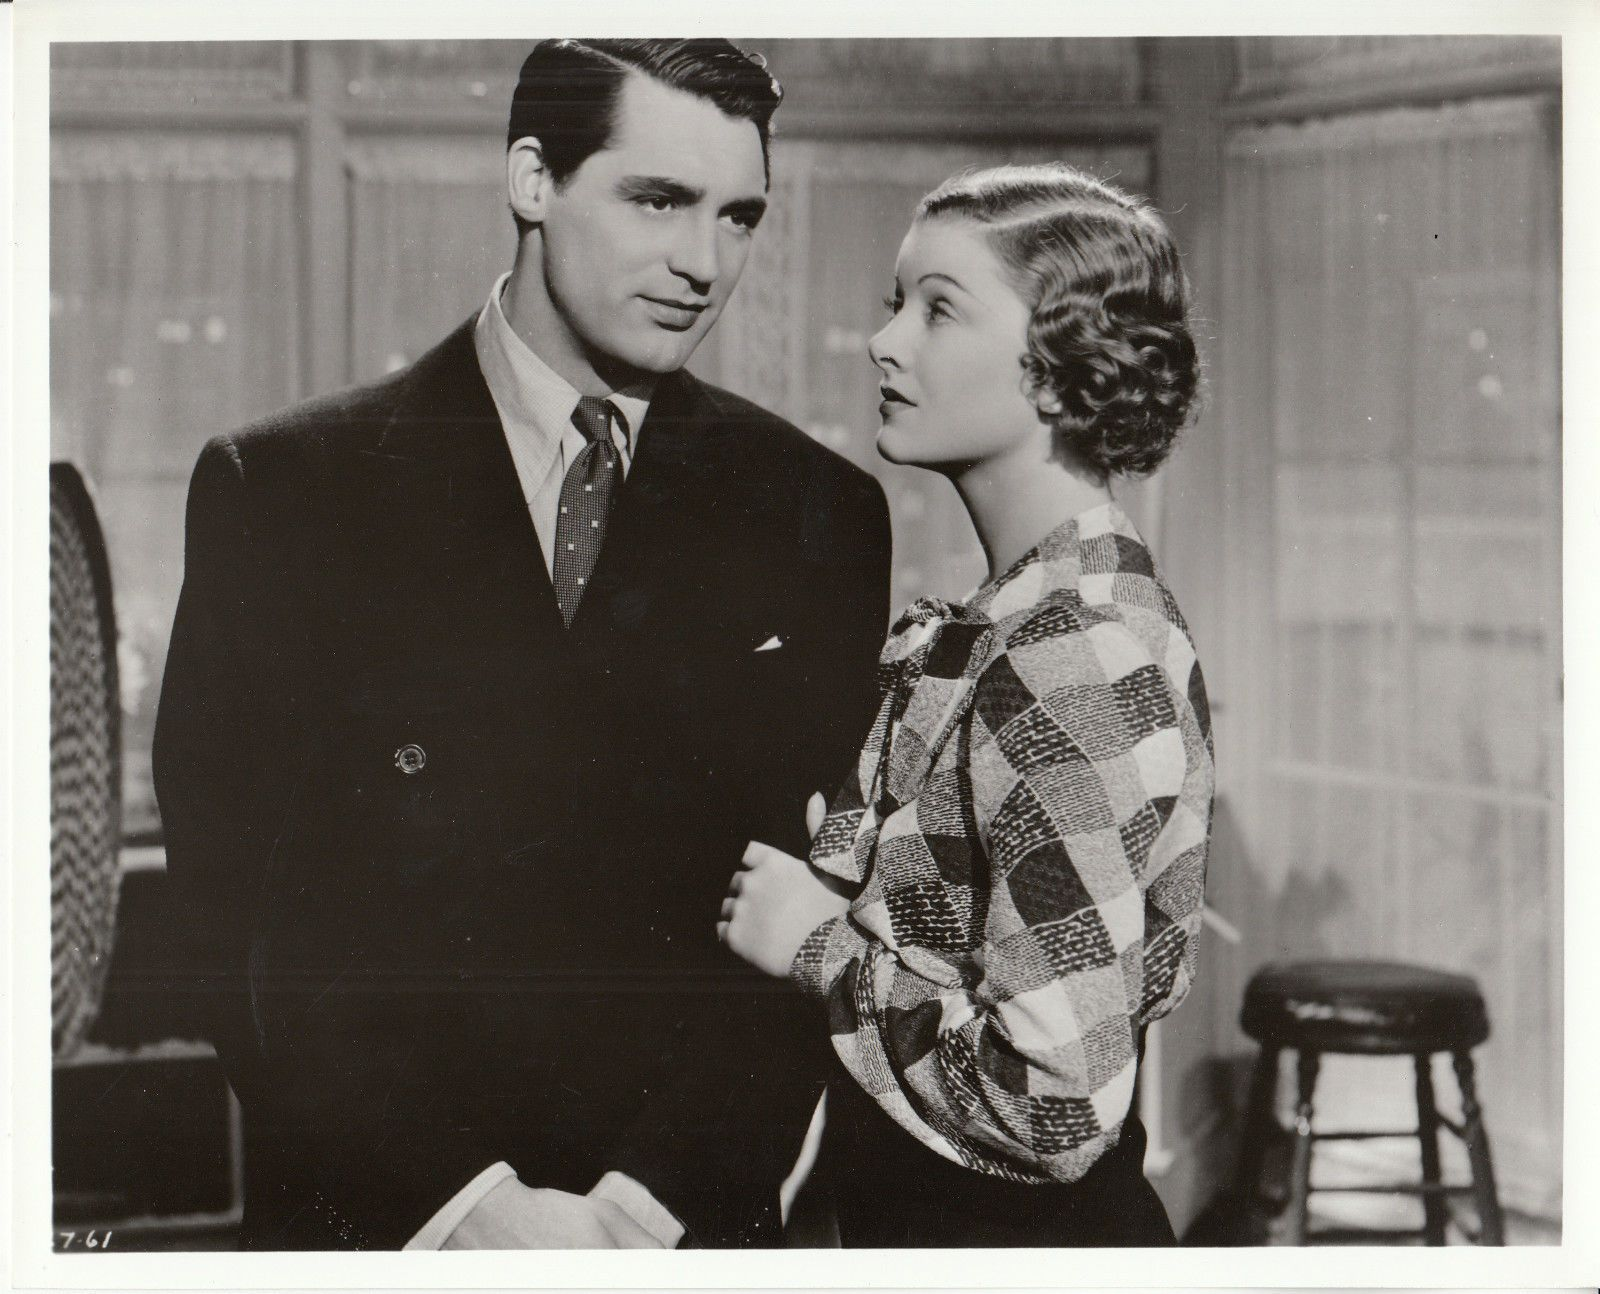 Cary Grant and Myrna Loy